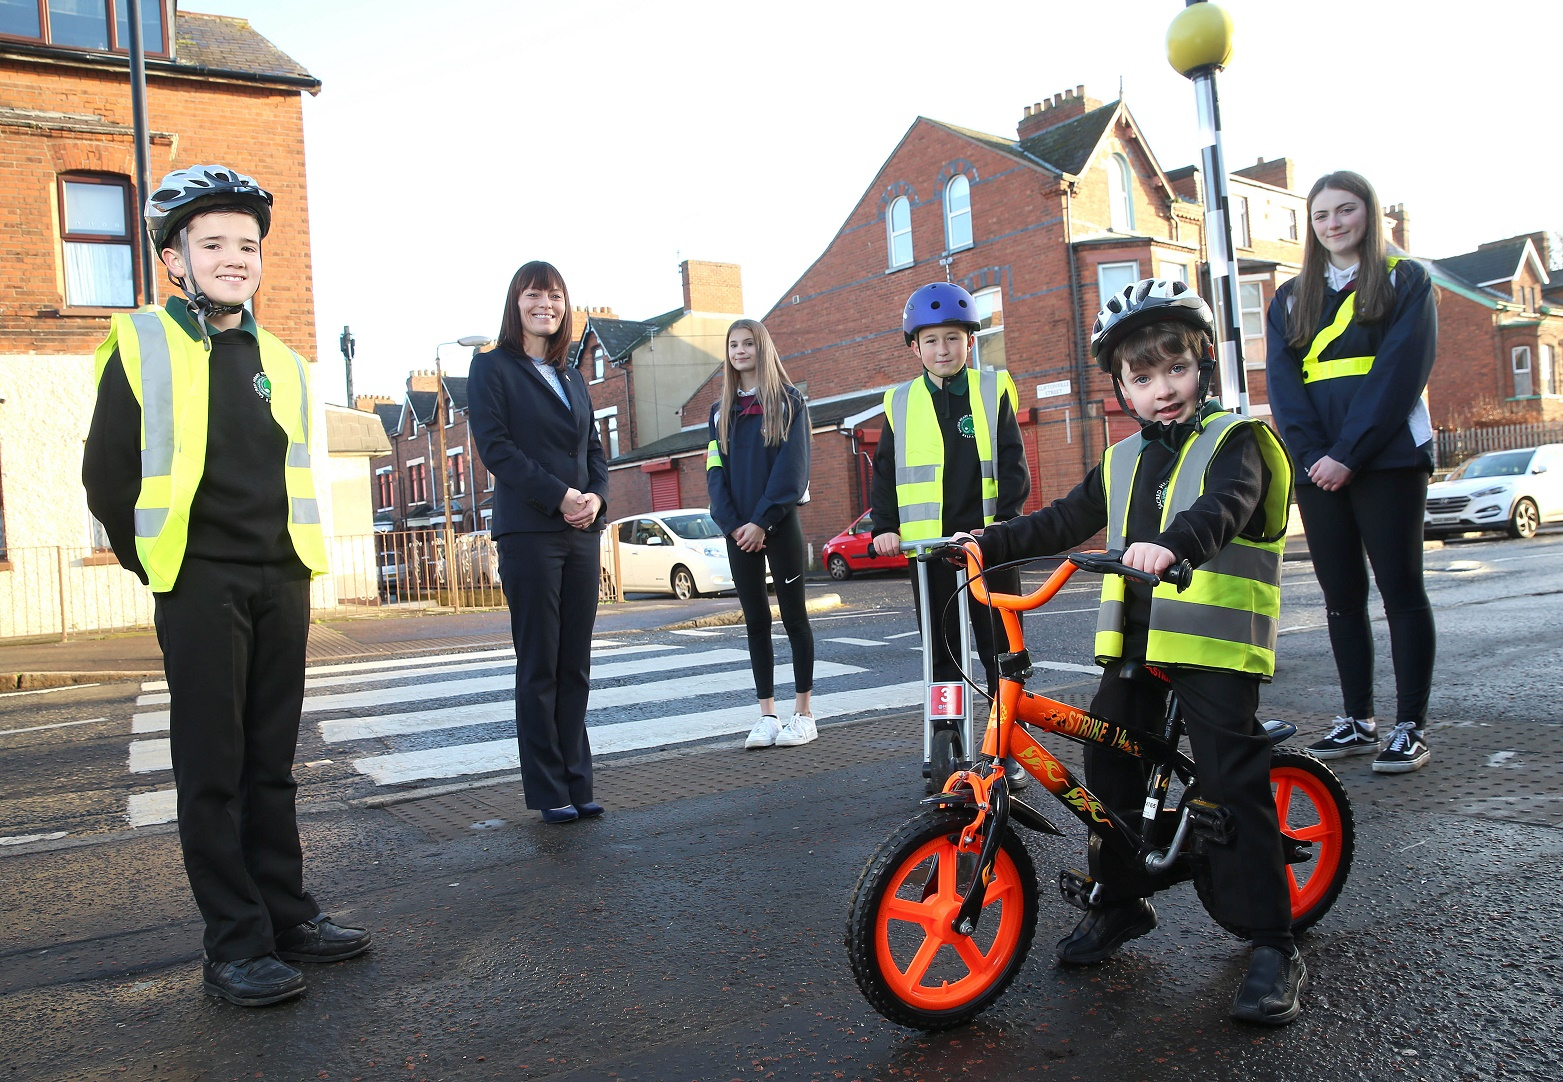 Road Safety Grant Scheme pic - Minister Mallon announces £87,000 for local road safety initiatives - Newry newspaper